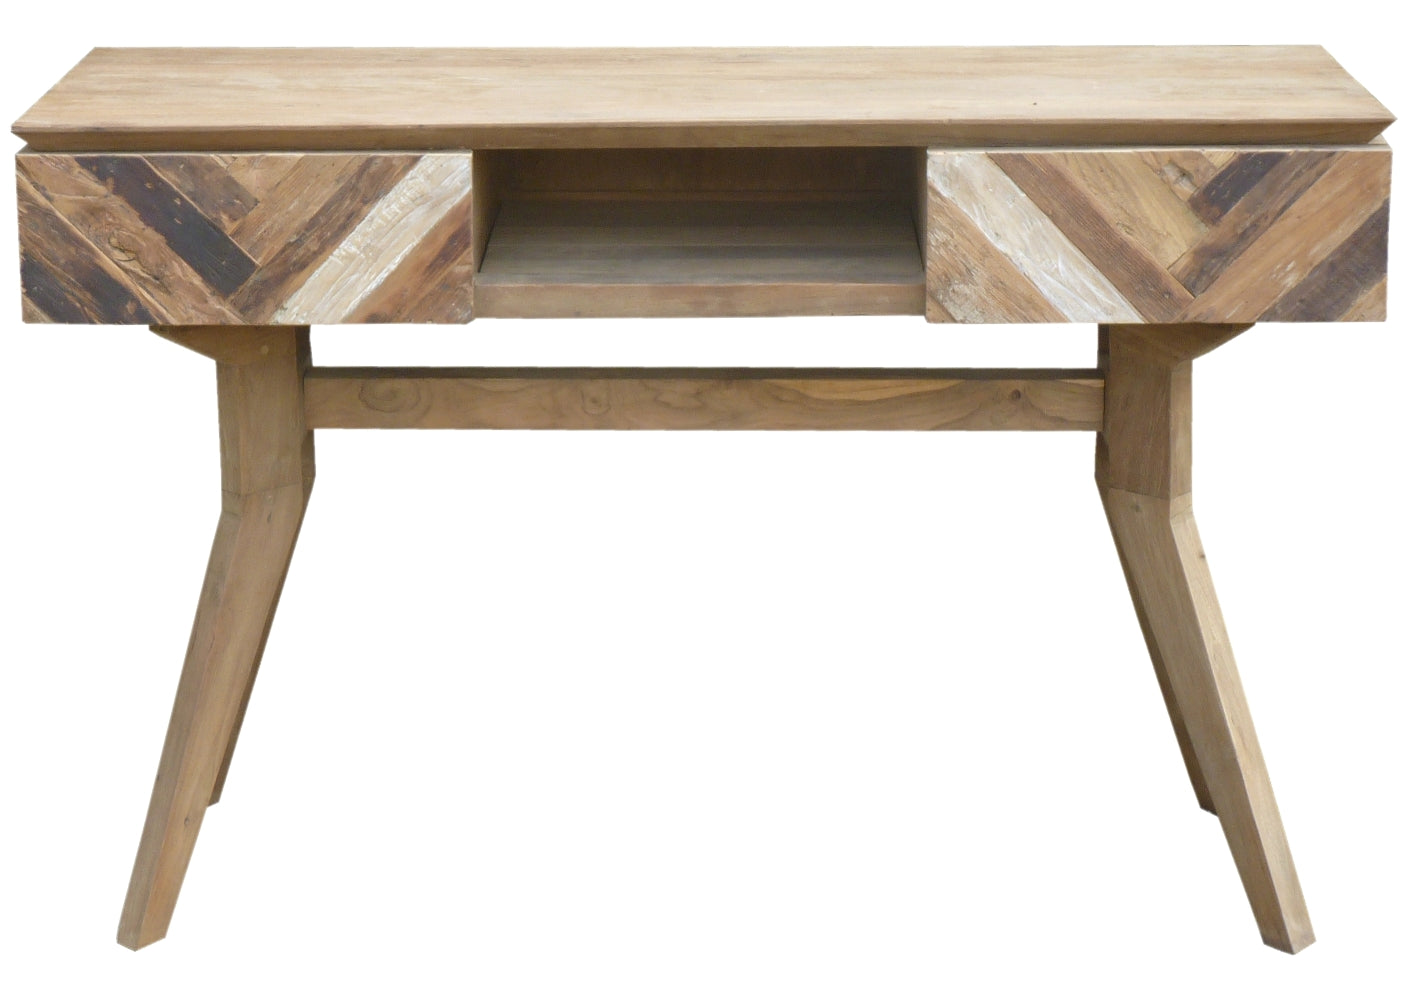 Recycled Teak Wood Brux Art Deco Console Table Tv Stand